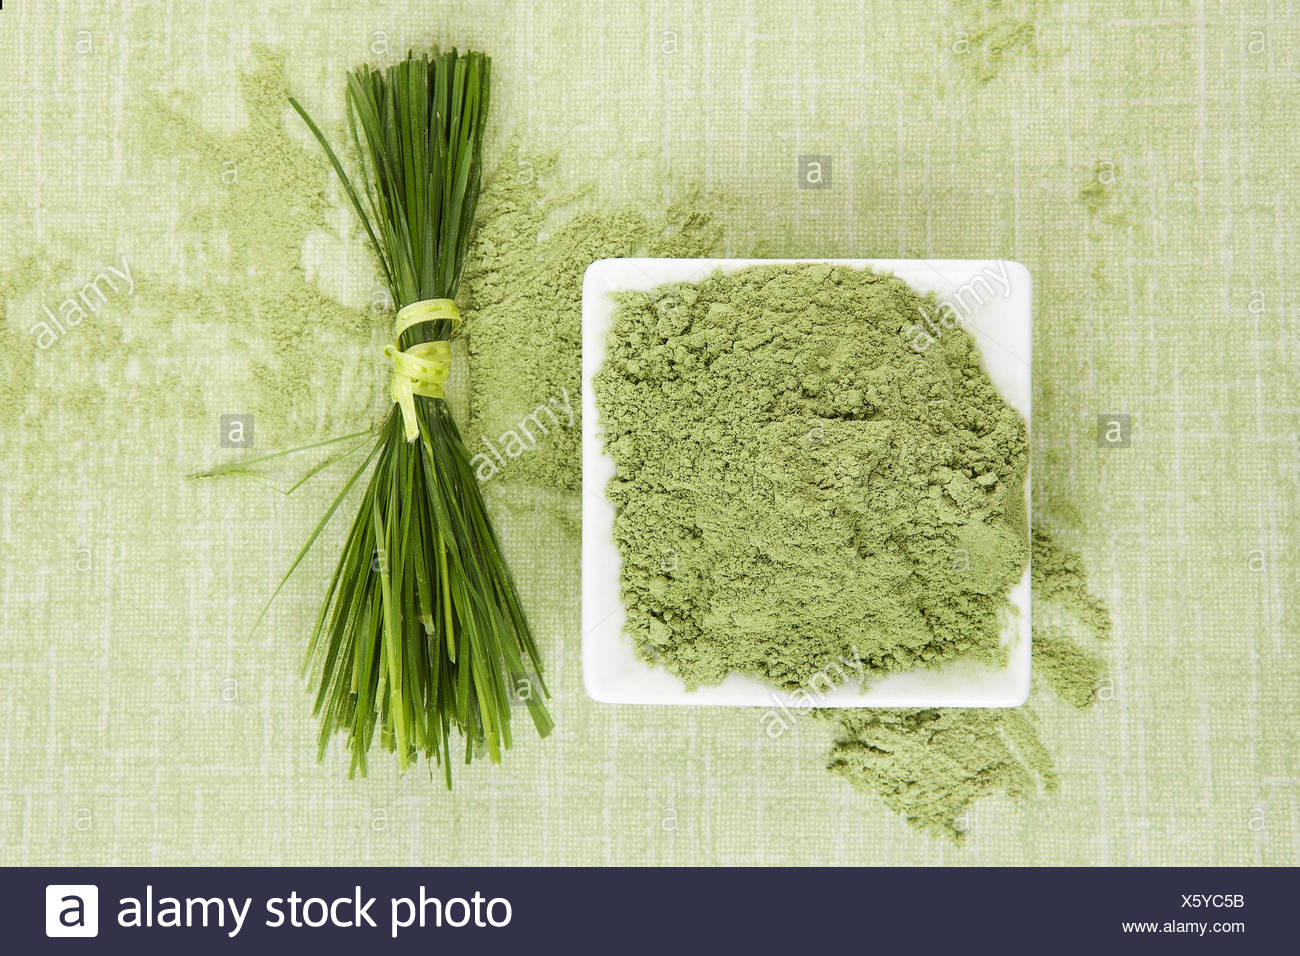 Green superfood. - Stock Image